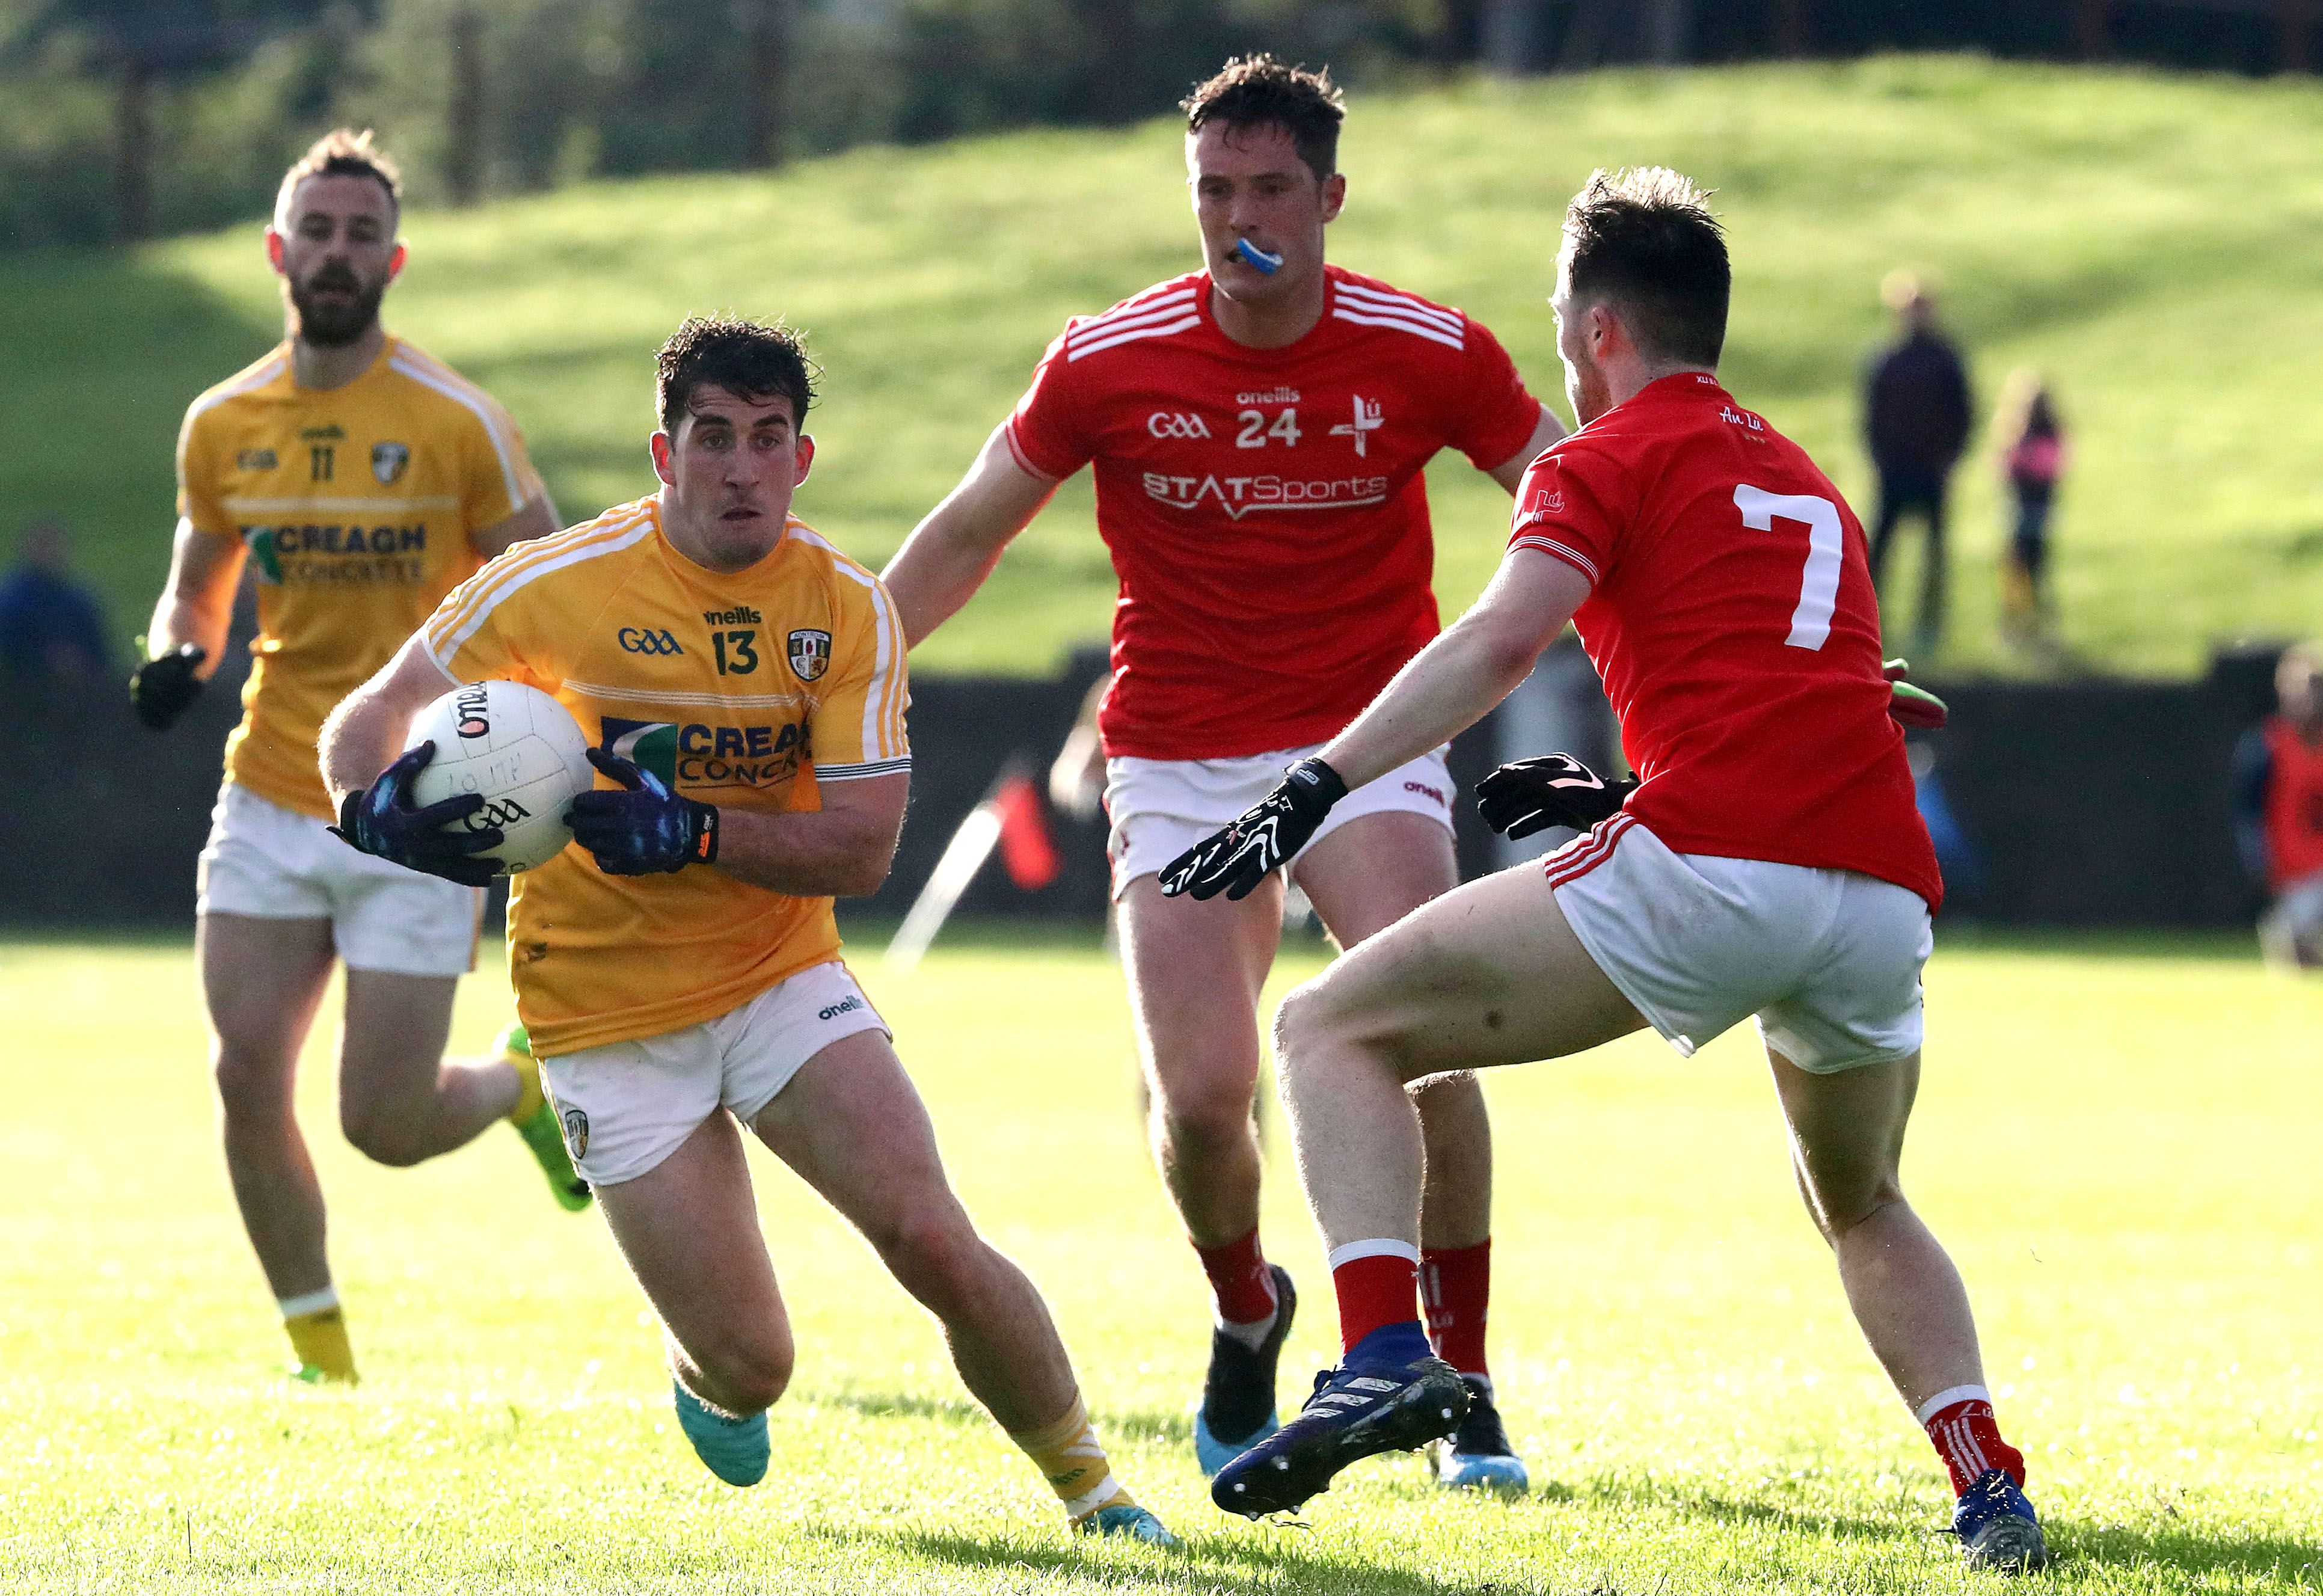 Ryan Murray in action against Louth in the 2019 All-Ireland Qualifiers when Antrim scored a victory. Both sides are under new management with Enda McGinley leading the Saffrons, while his former Tyrone boss Mickey Harte is at the helm in the Wee County